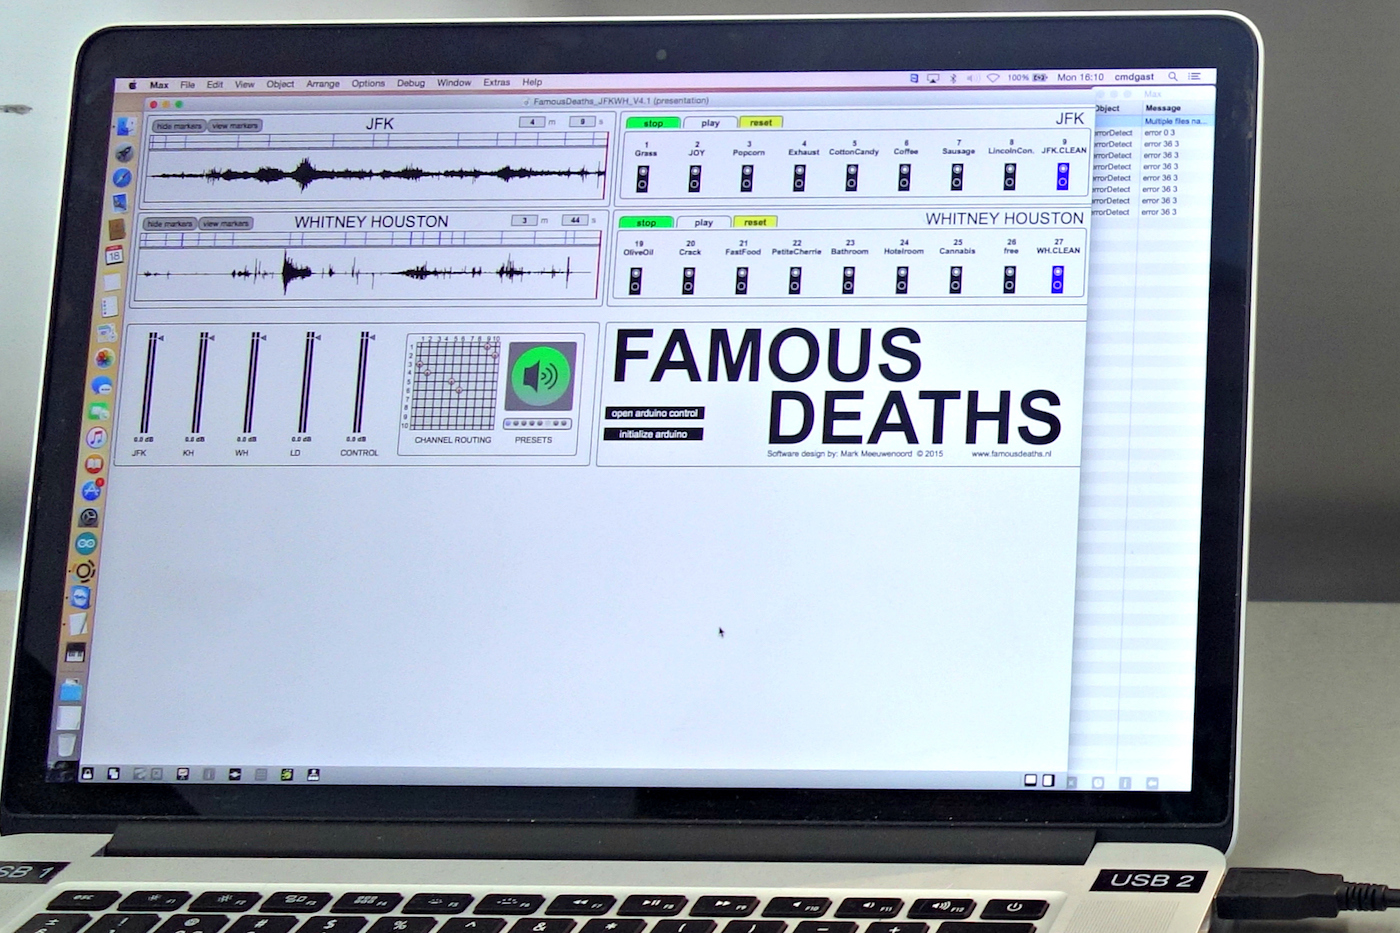 'Famous Deaths' installation view